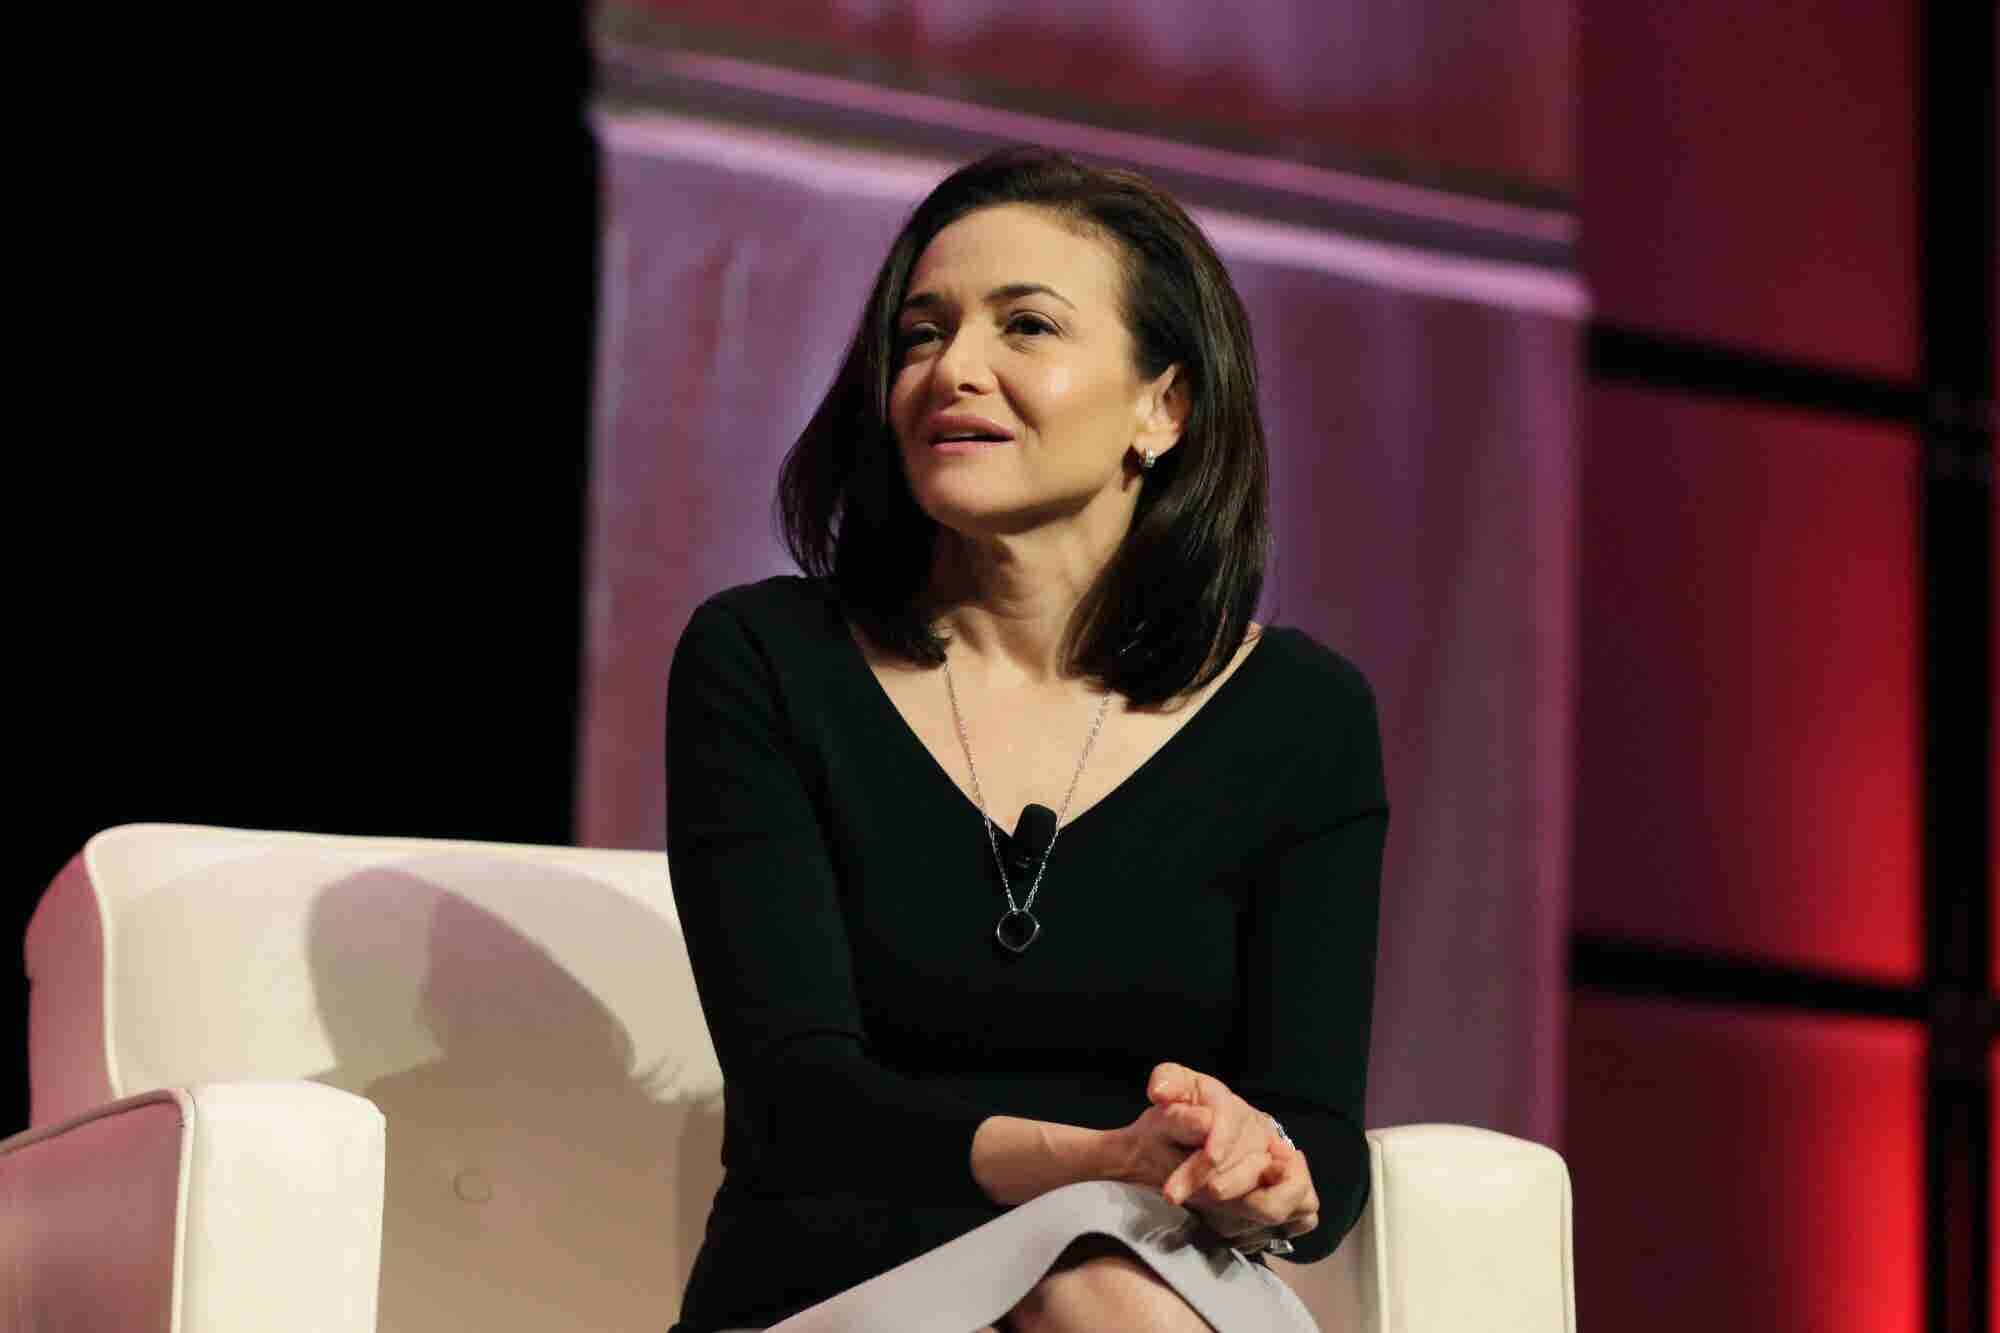 Women Are Still Not Being Offered Management Positions at Equal Rates, But There's Hope, Sheryl Sandberg Says